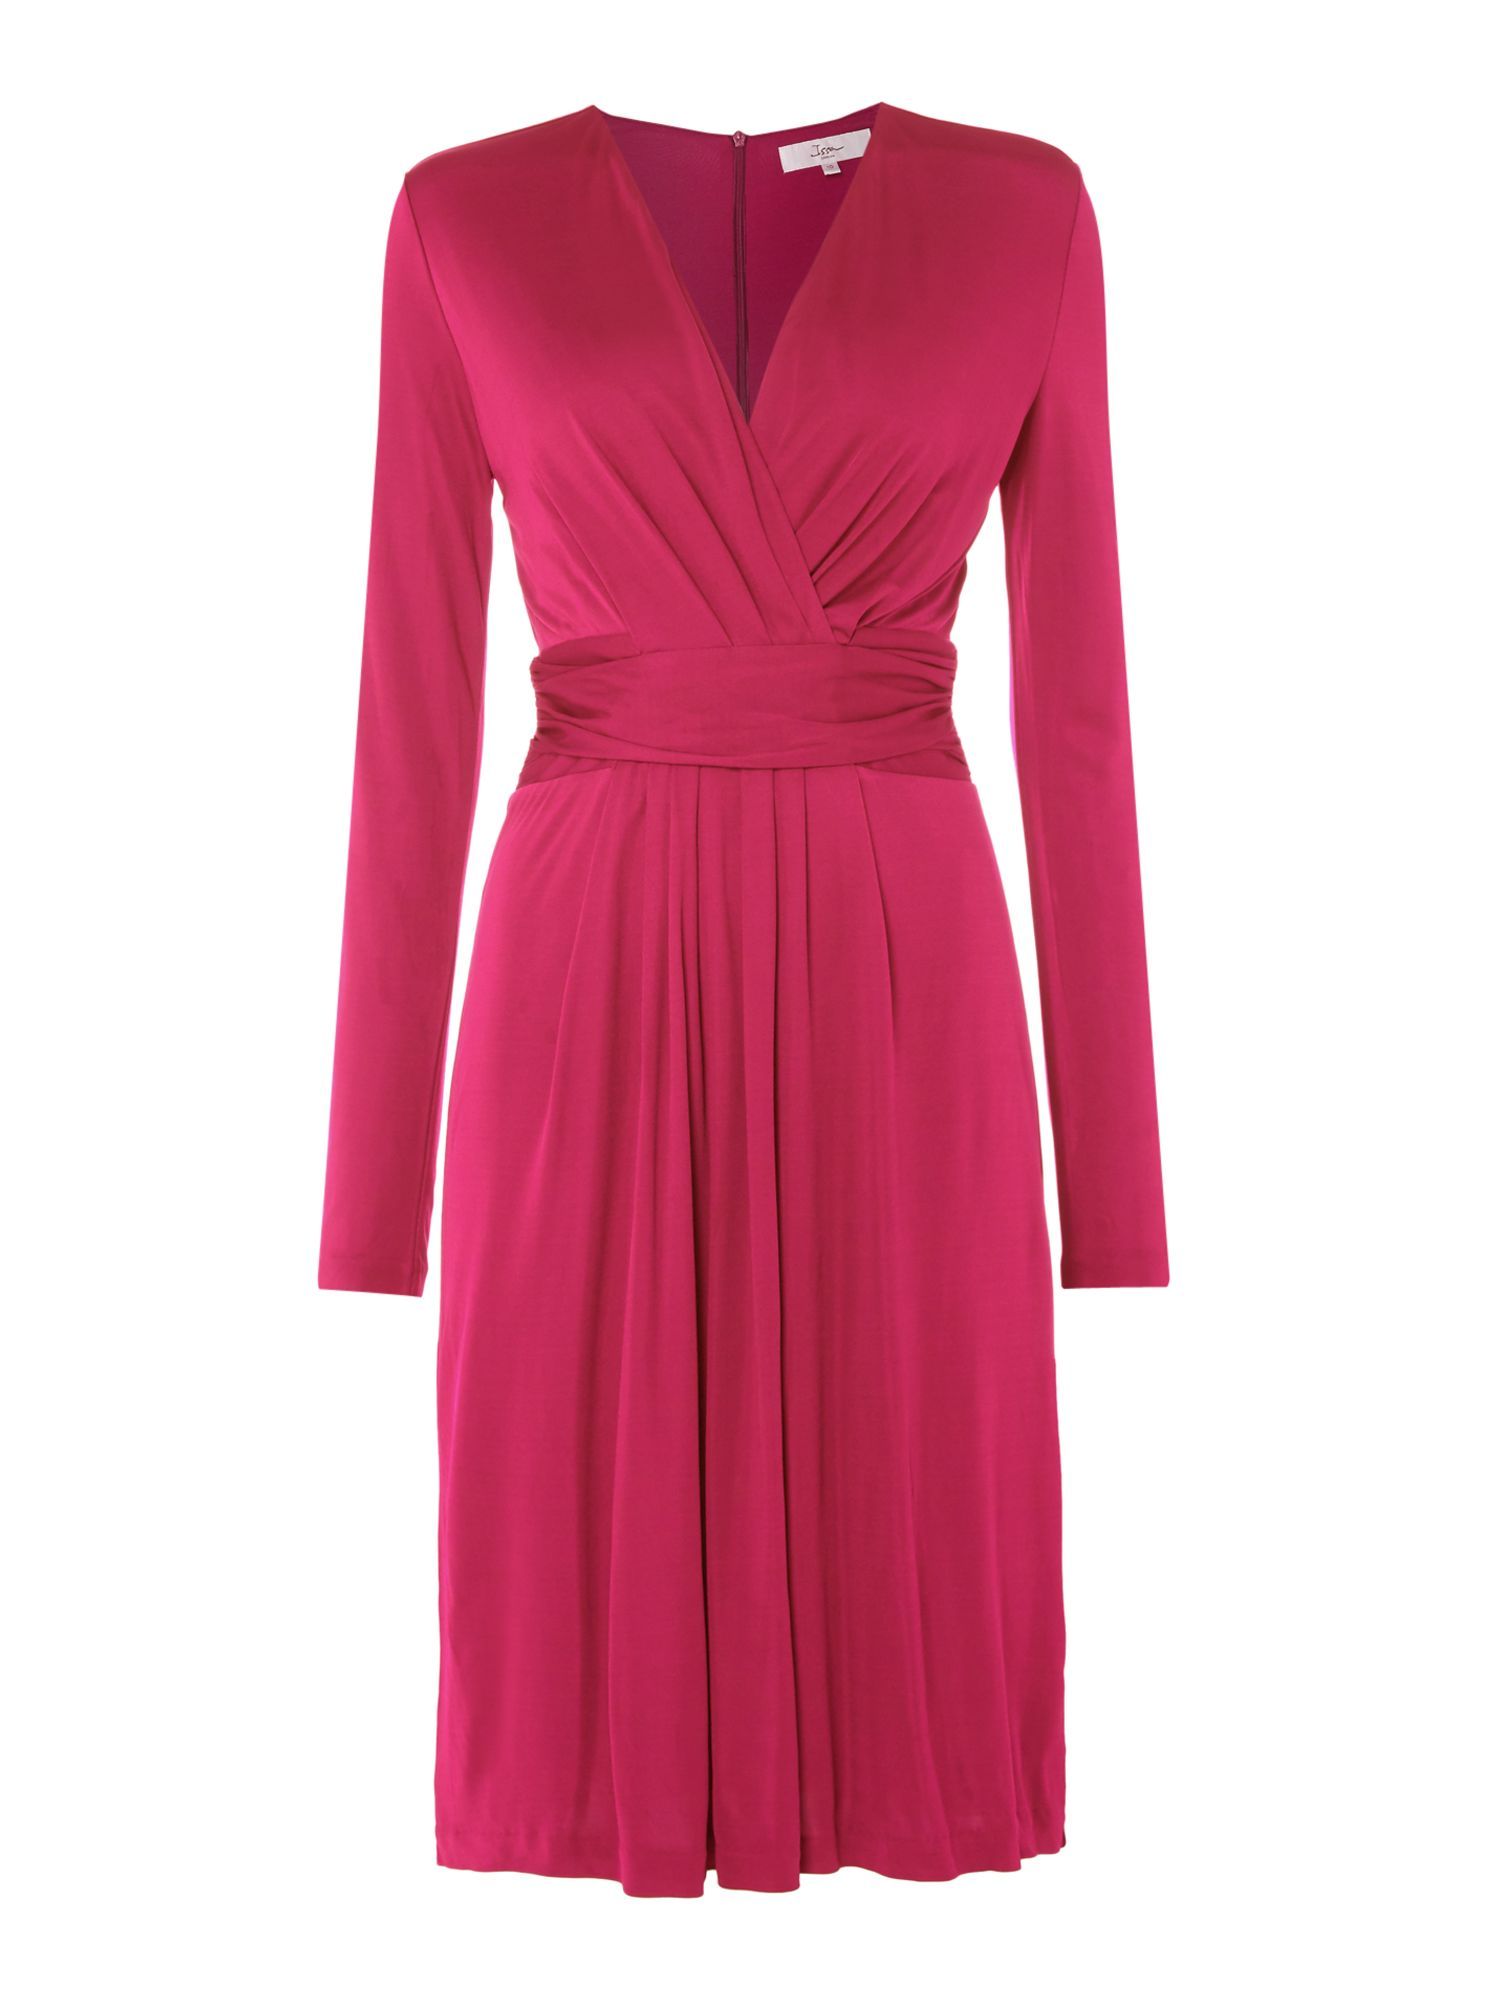 ISSA Darcy Pleat Detail Dress, Orchid